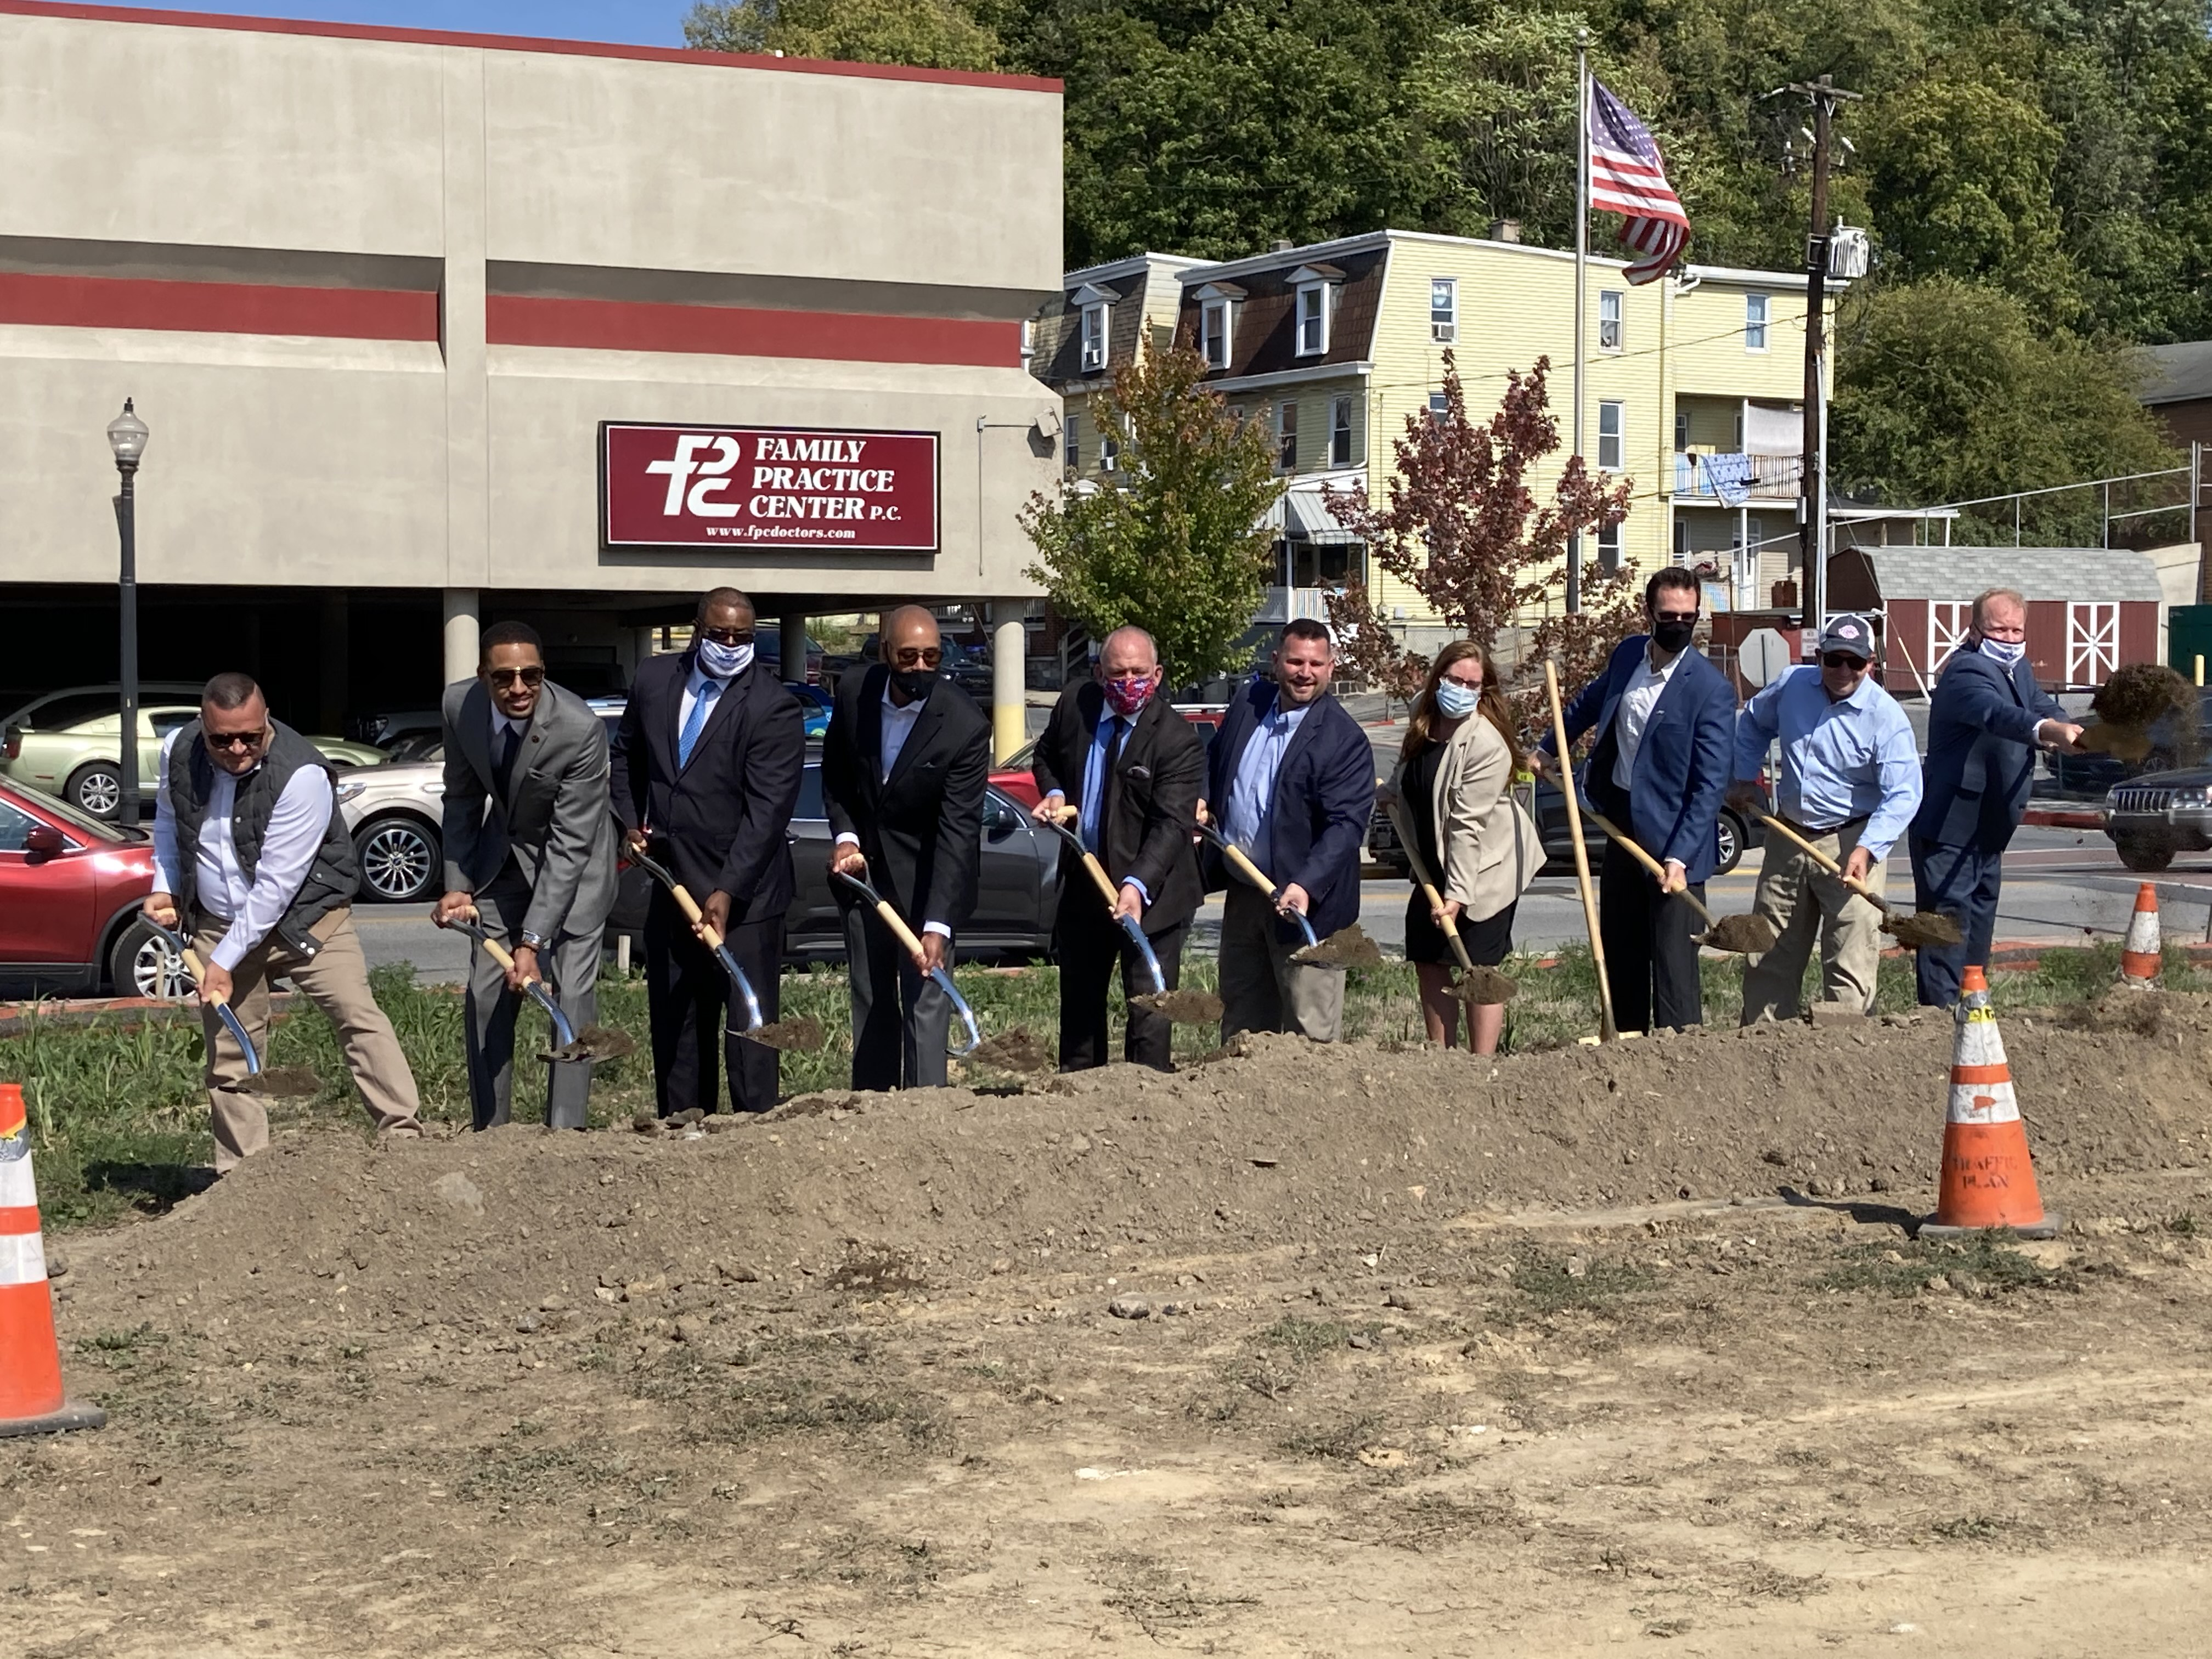 The development team at IDP, local Steelton officials and Dauphin County Commissioners break ground on the Steel Works project.